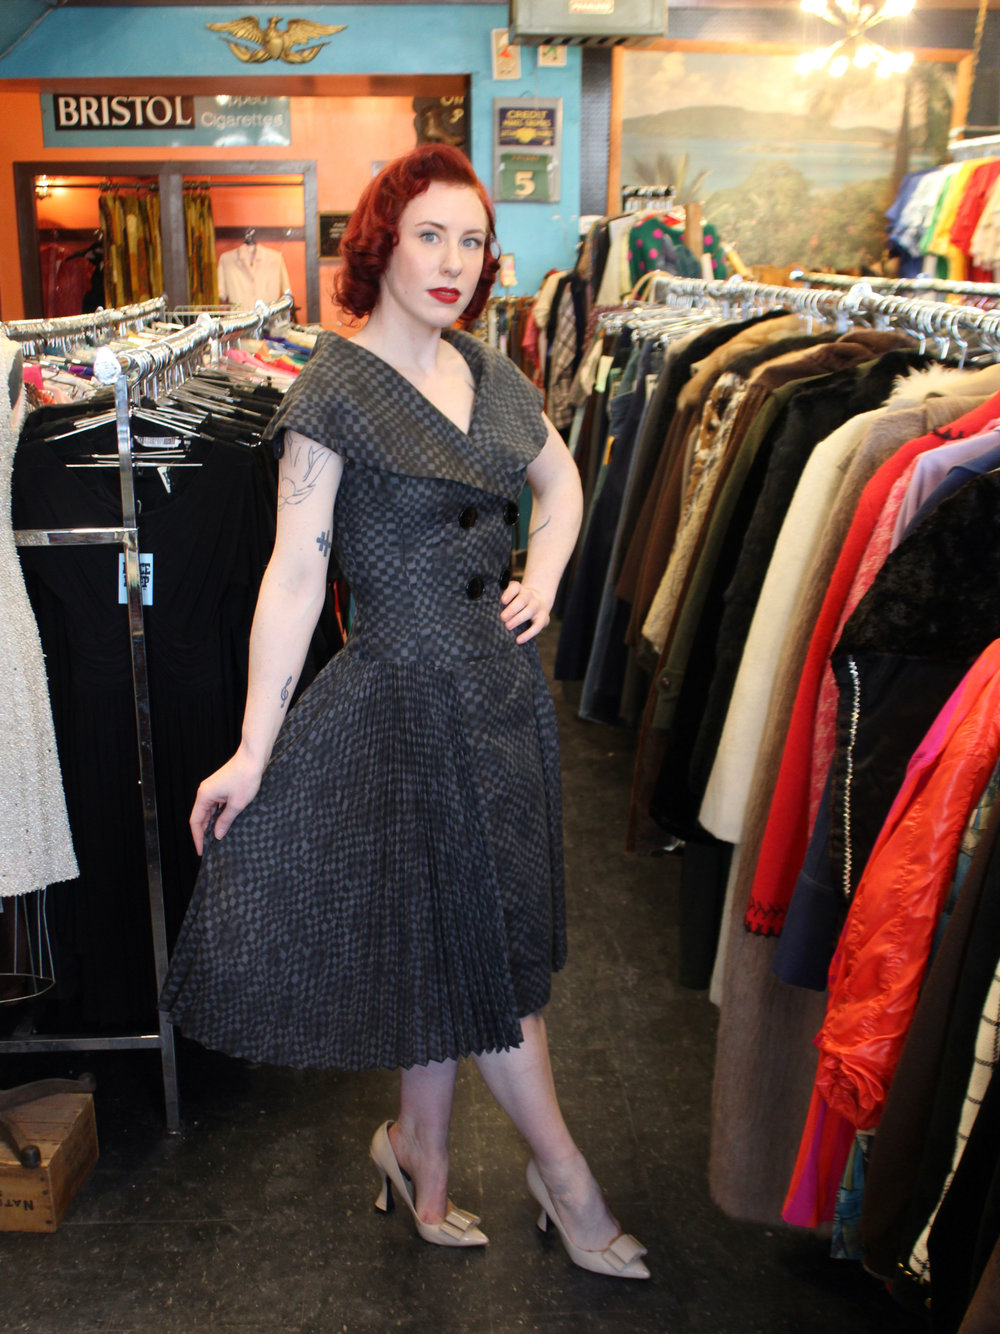 Pleated checkerboard print 50s dress - $80. No joke, I put this one on hold after trying it on. It will be mine!